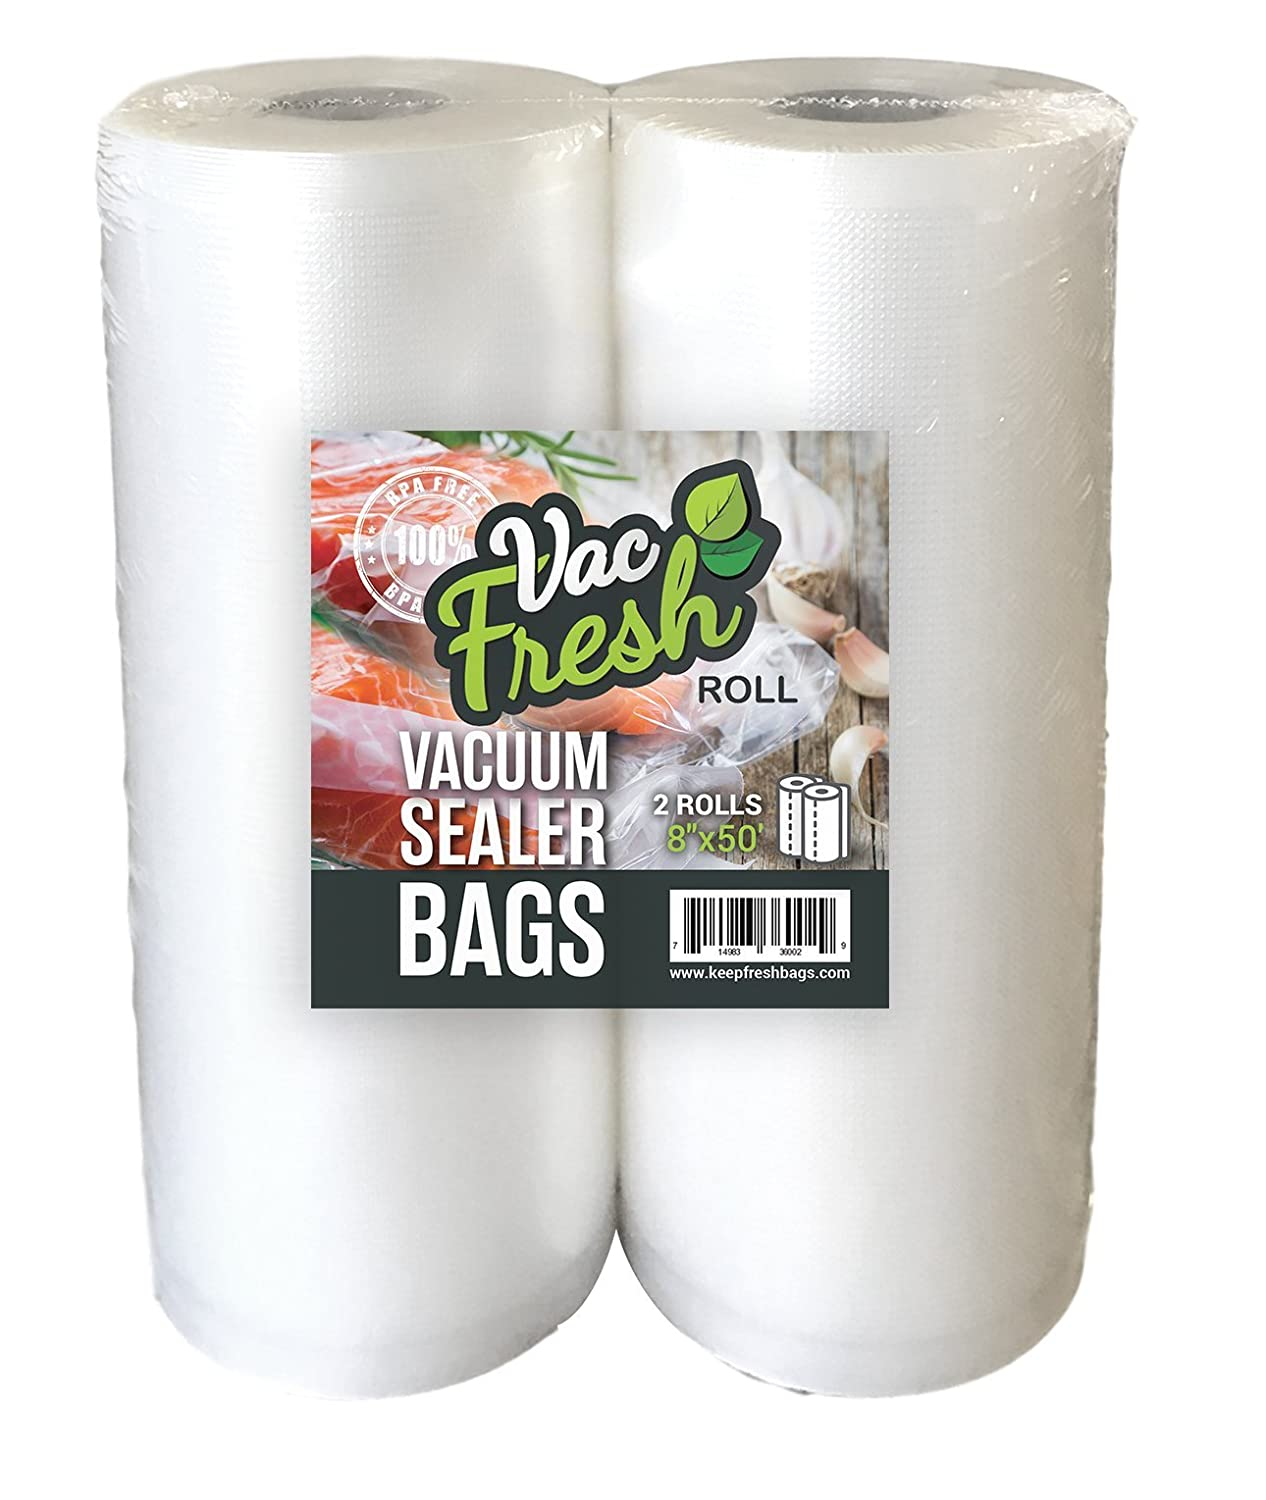 Vac-Fresh Roll 8x50 Vacuum Seal Bags 3.5mil for Food Vacuum Sealer Savers, 2 Rolls